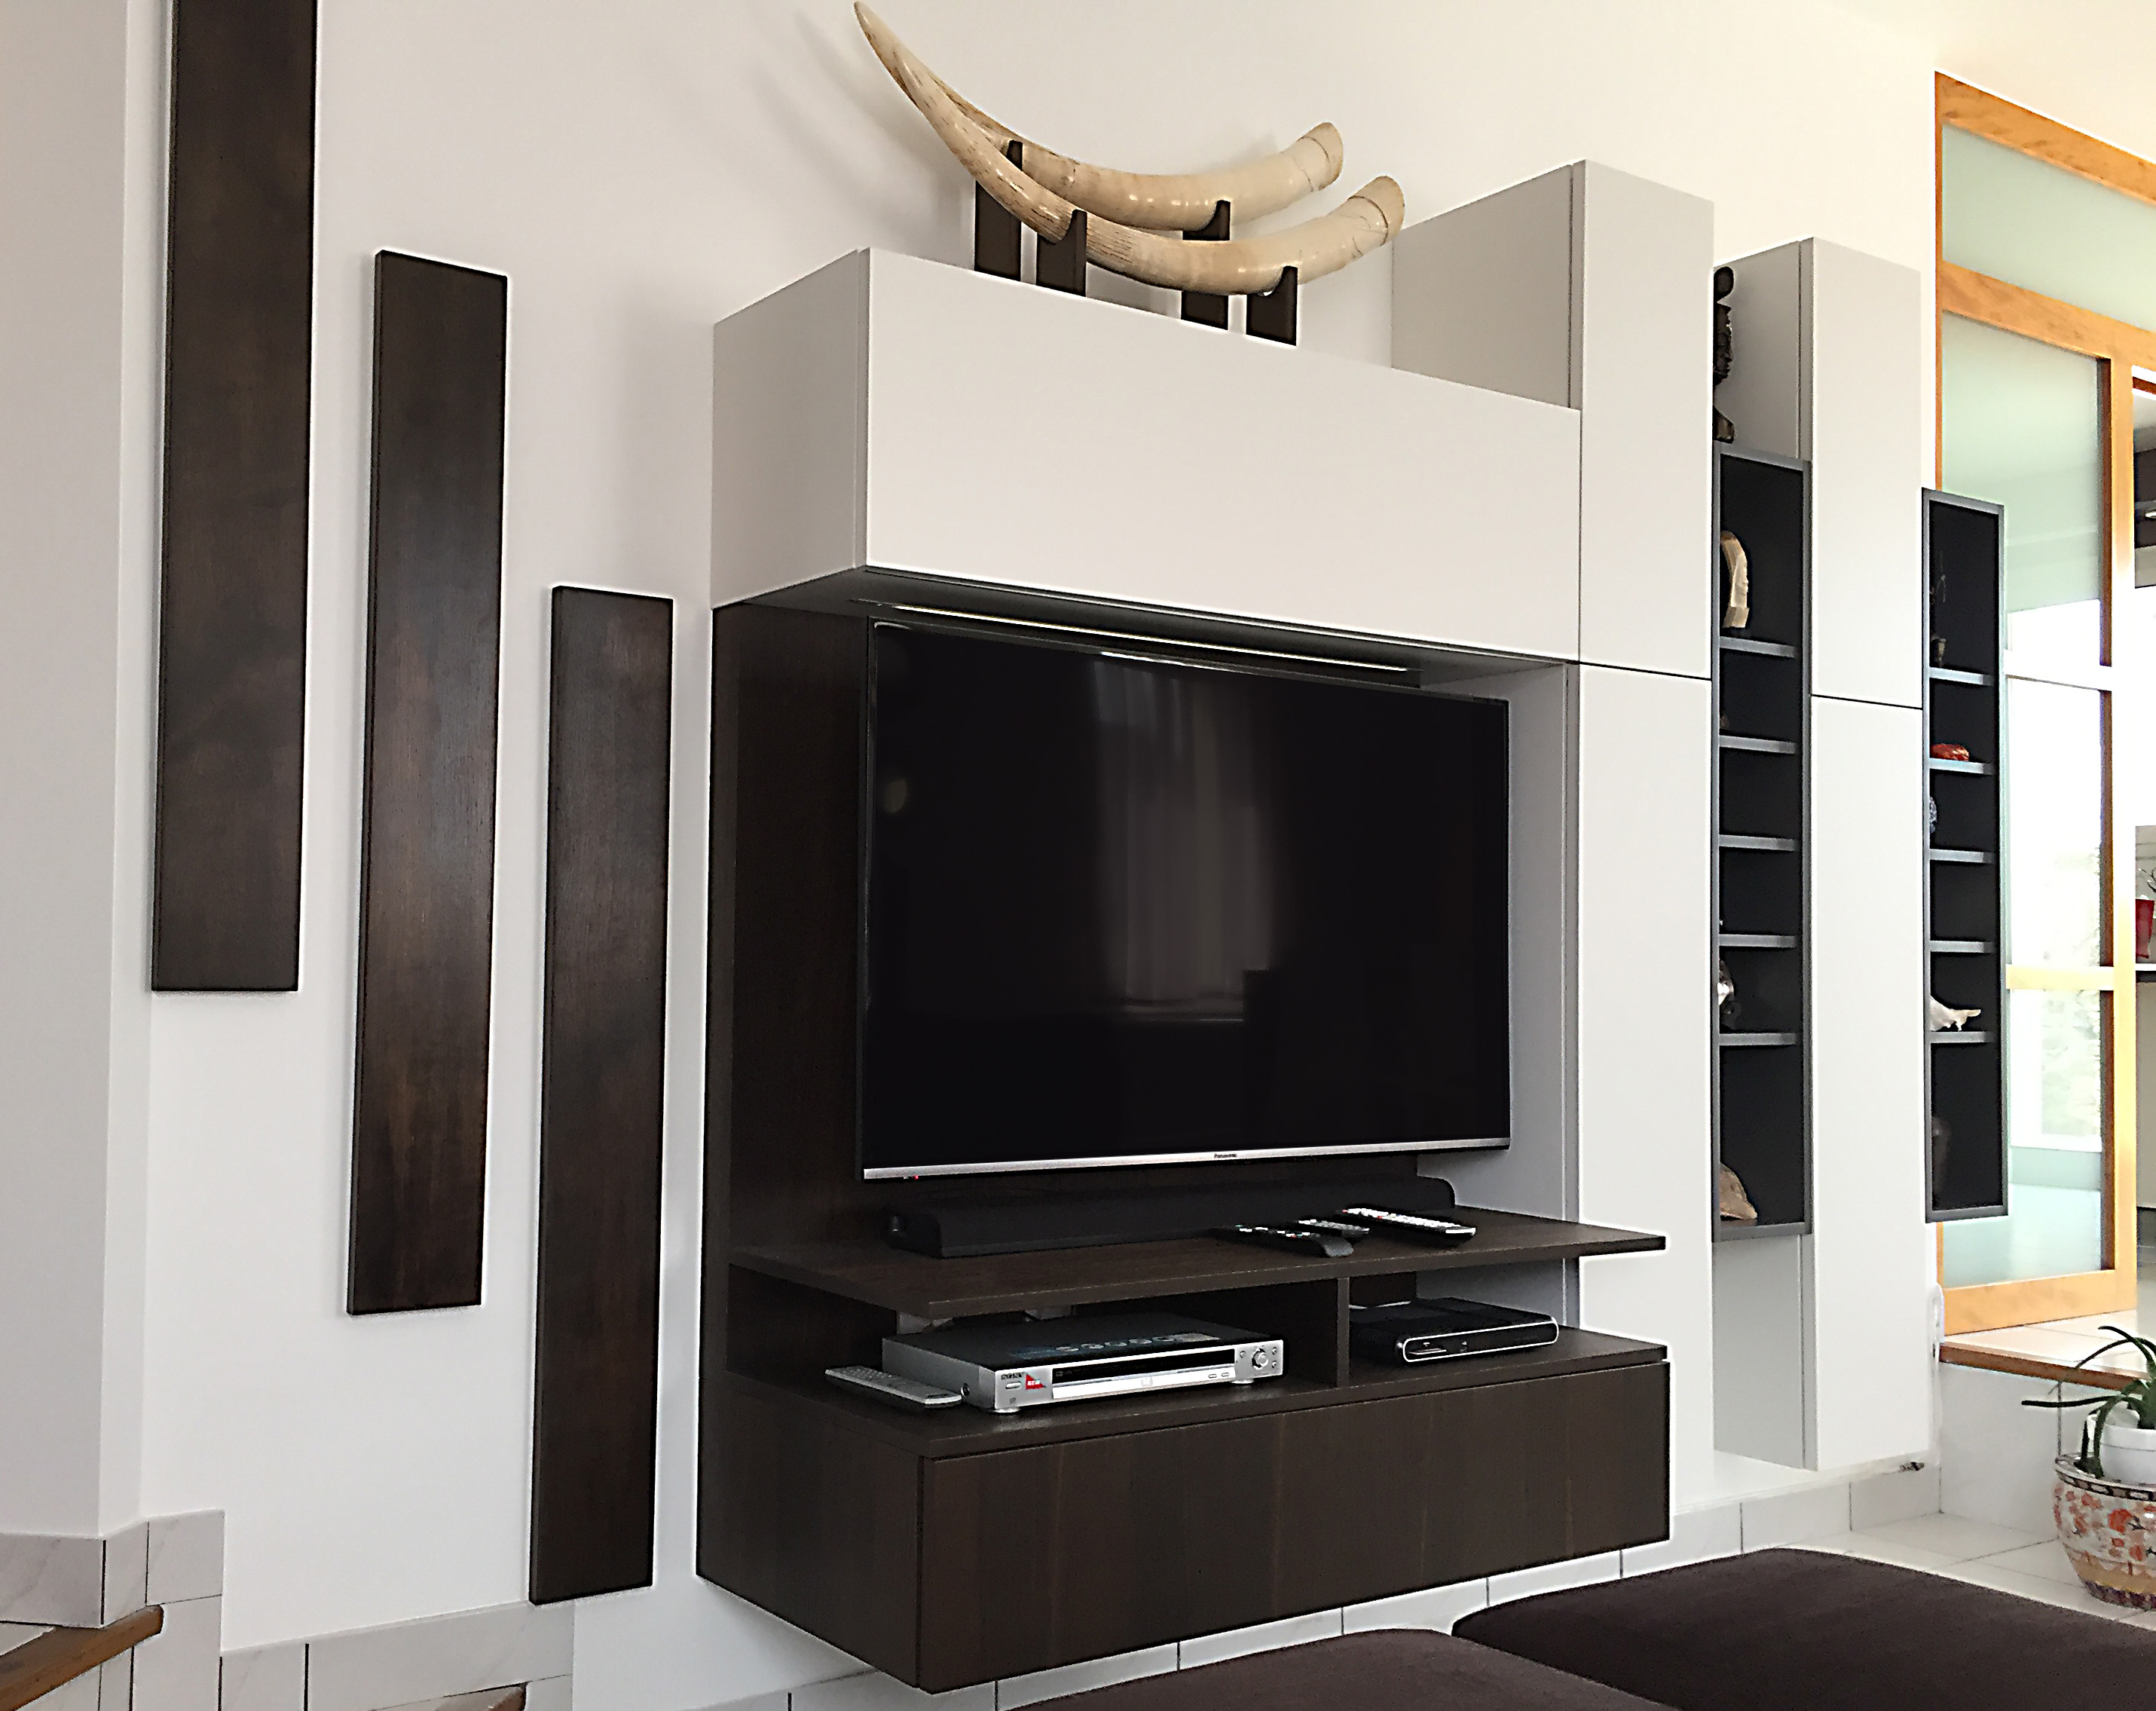 Elegant meuble tv suspendu blanc with meuble salon suspendu for Meuble salon suspendu